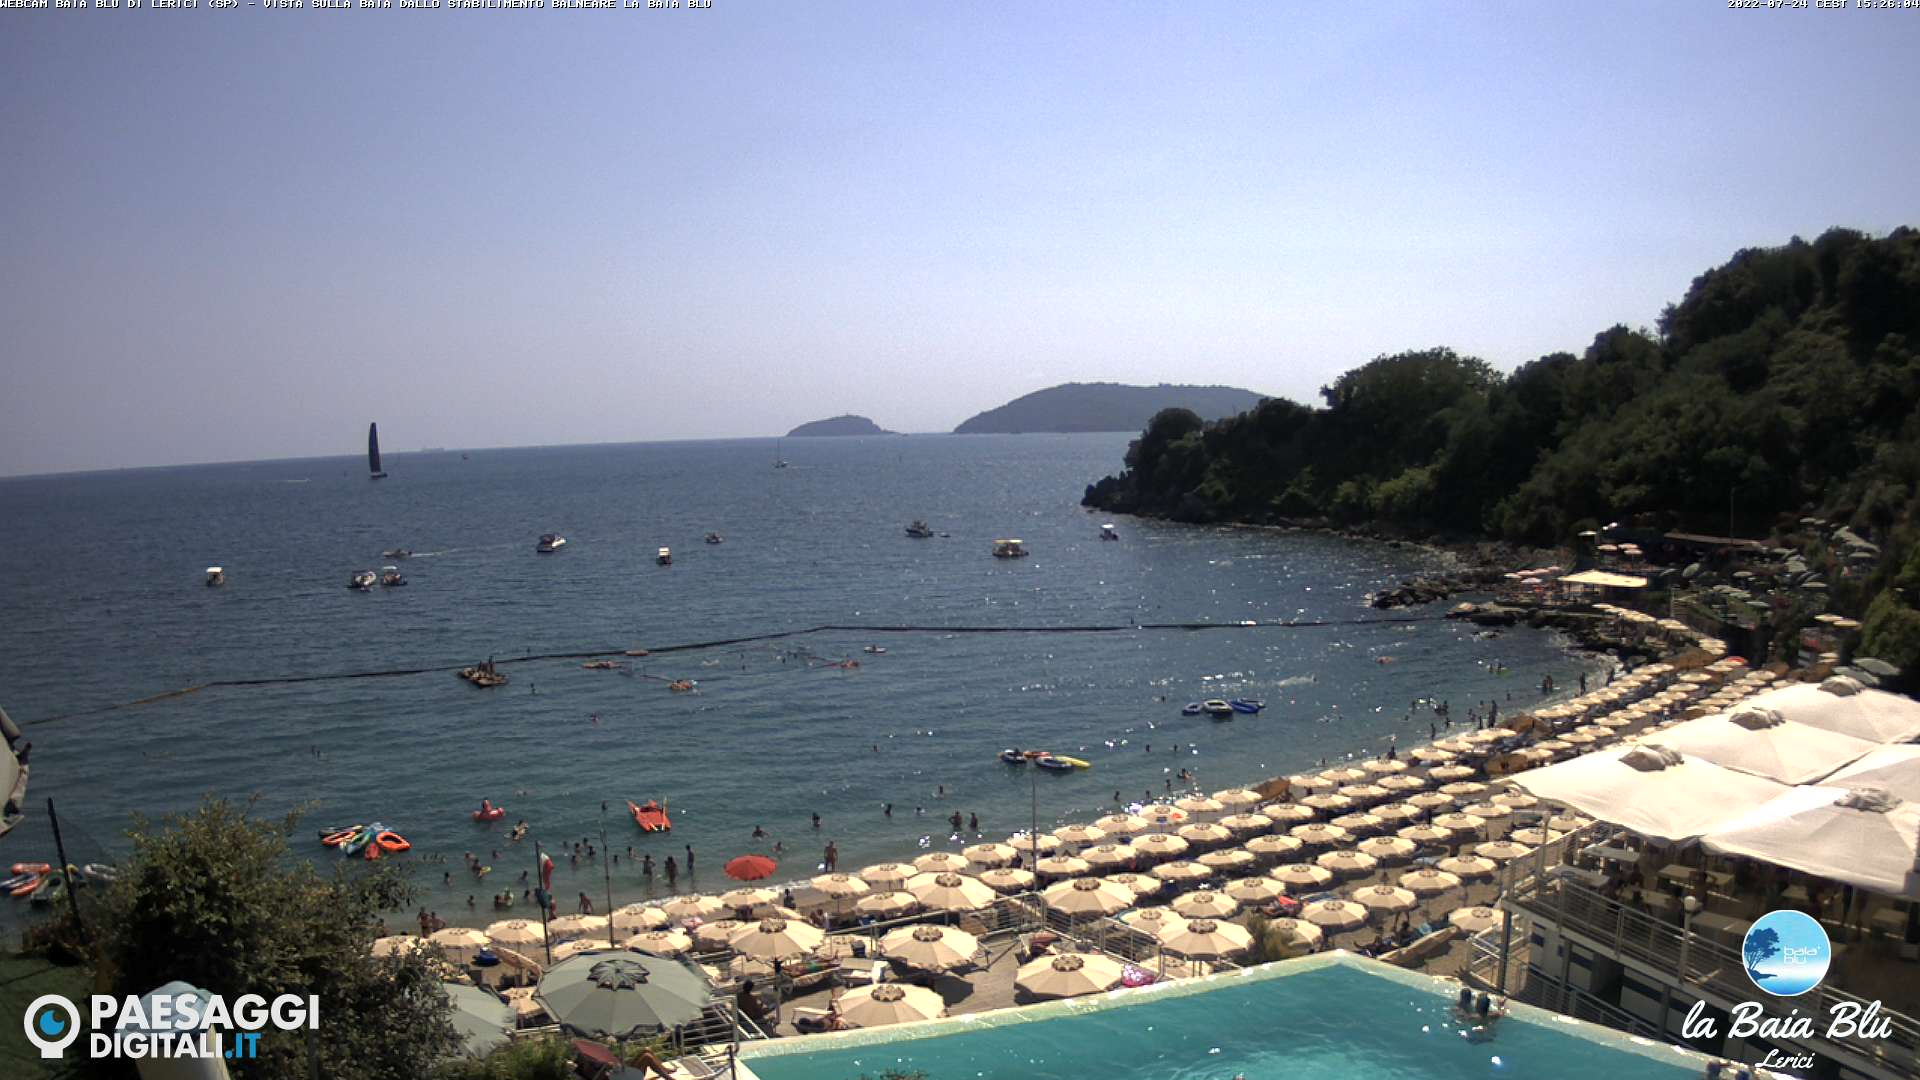 baia-blu-webcam